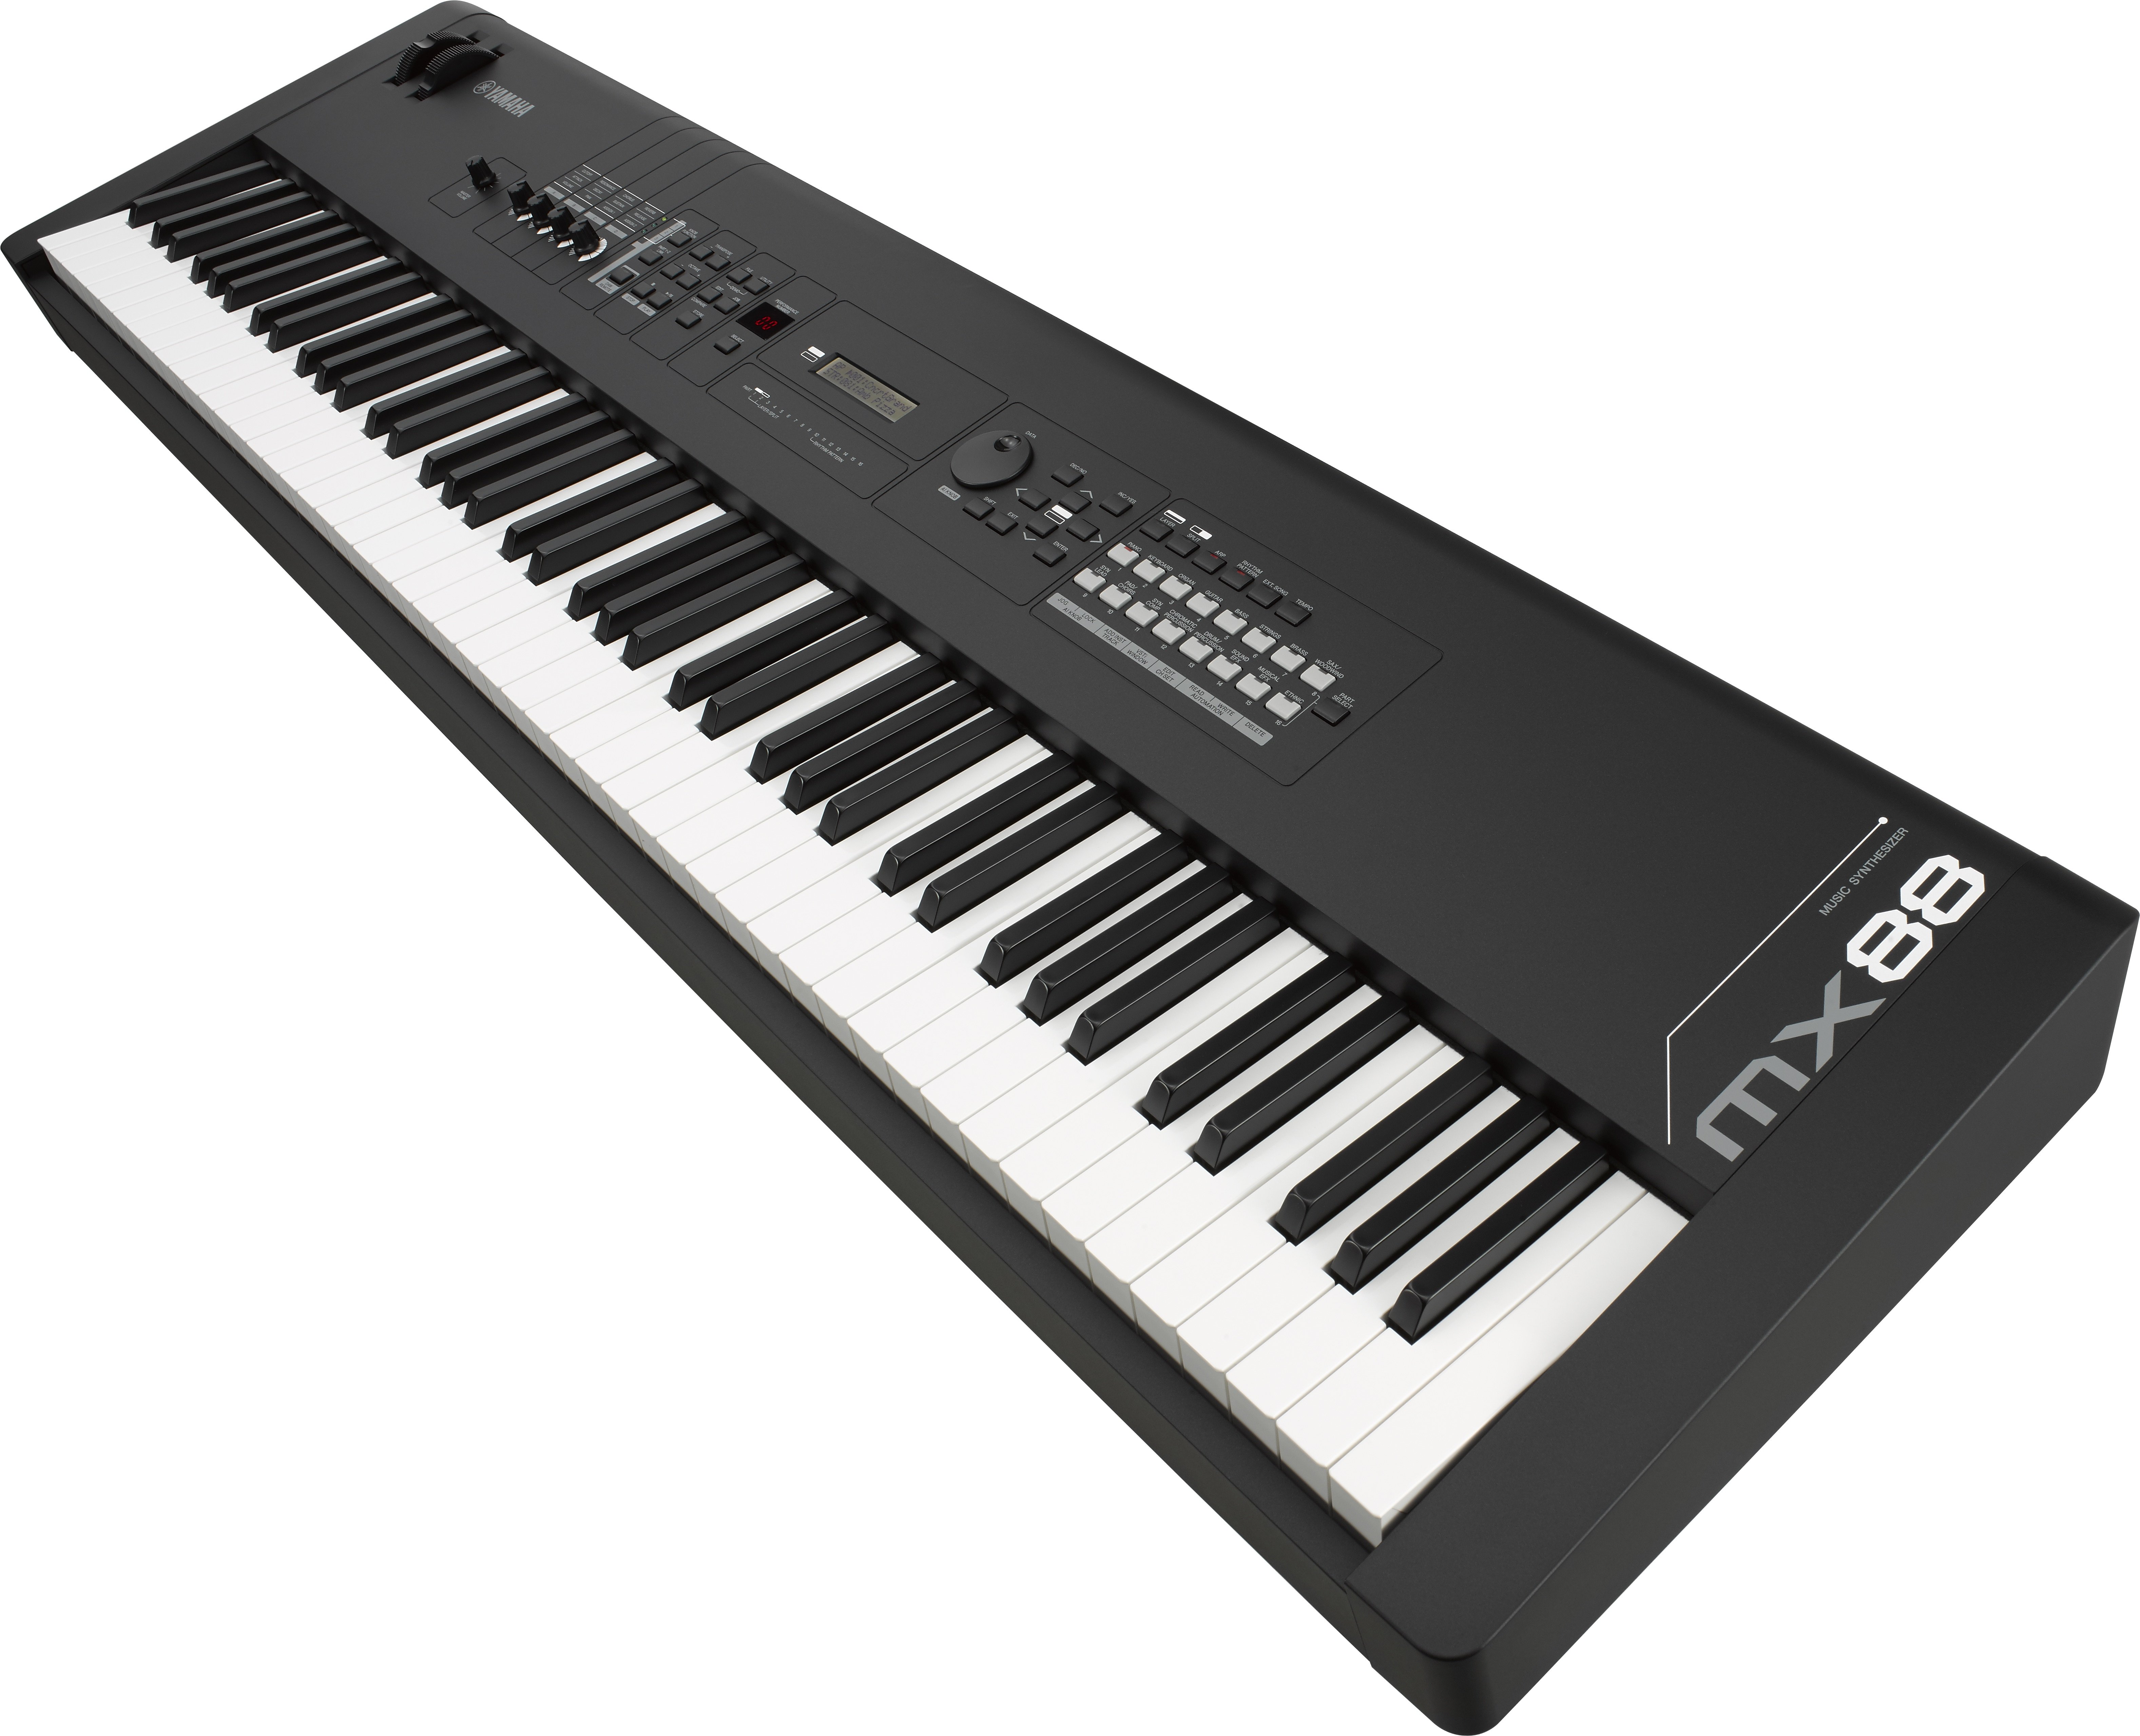 Yamaha expands mx series with 88 key weighted action mx88 for Yamaha full size keyboard with 88 keys